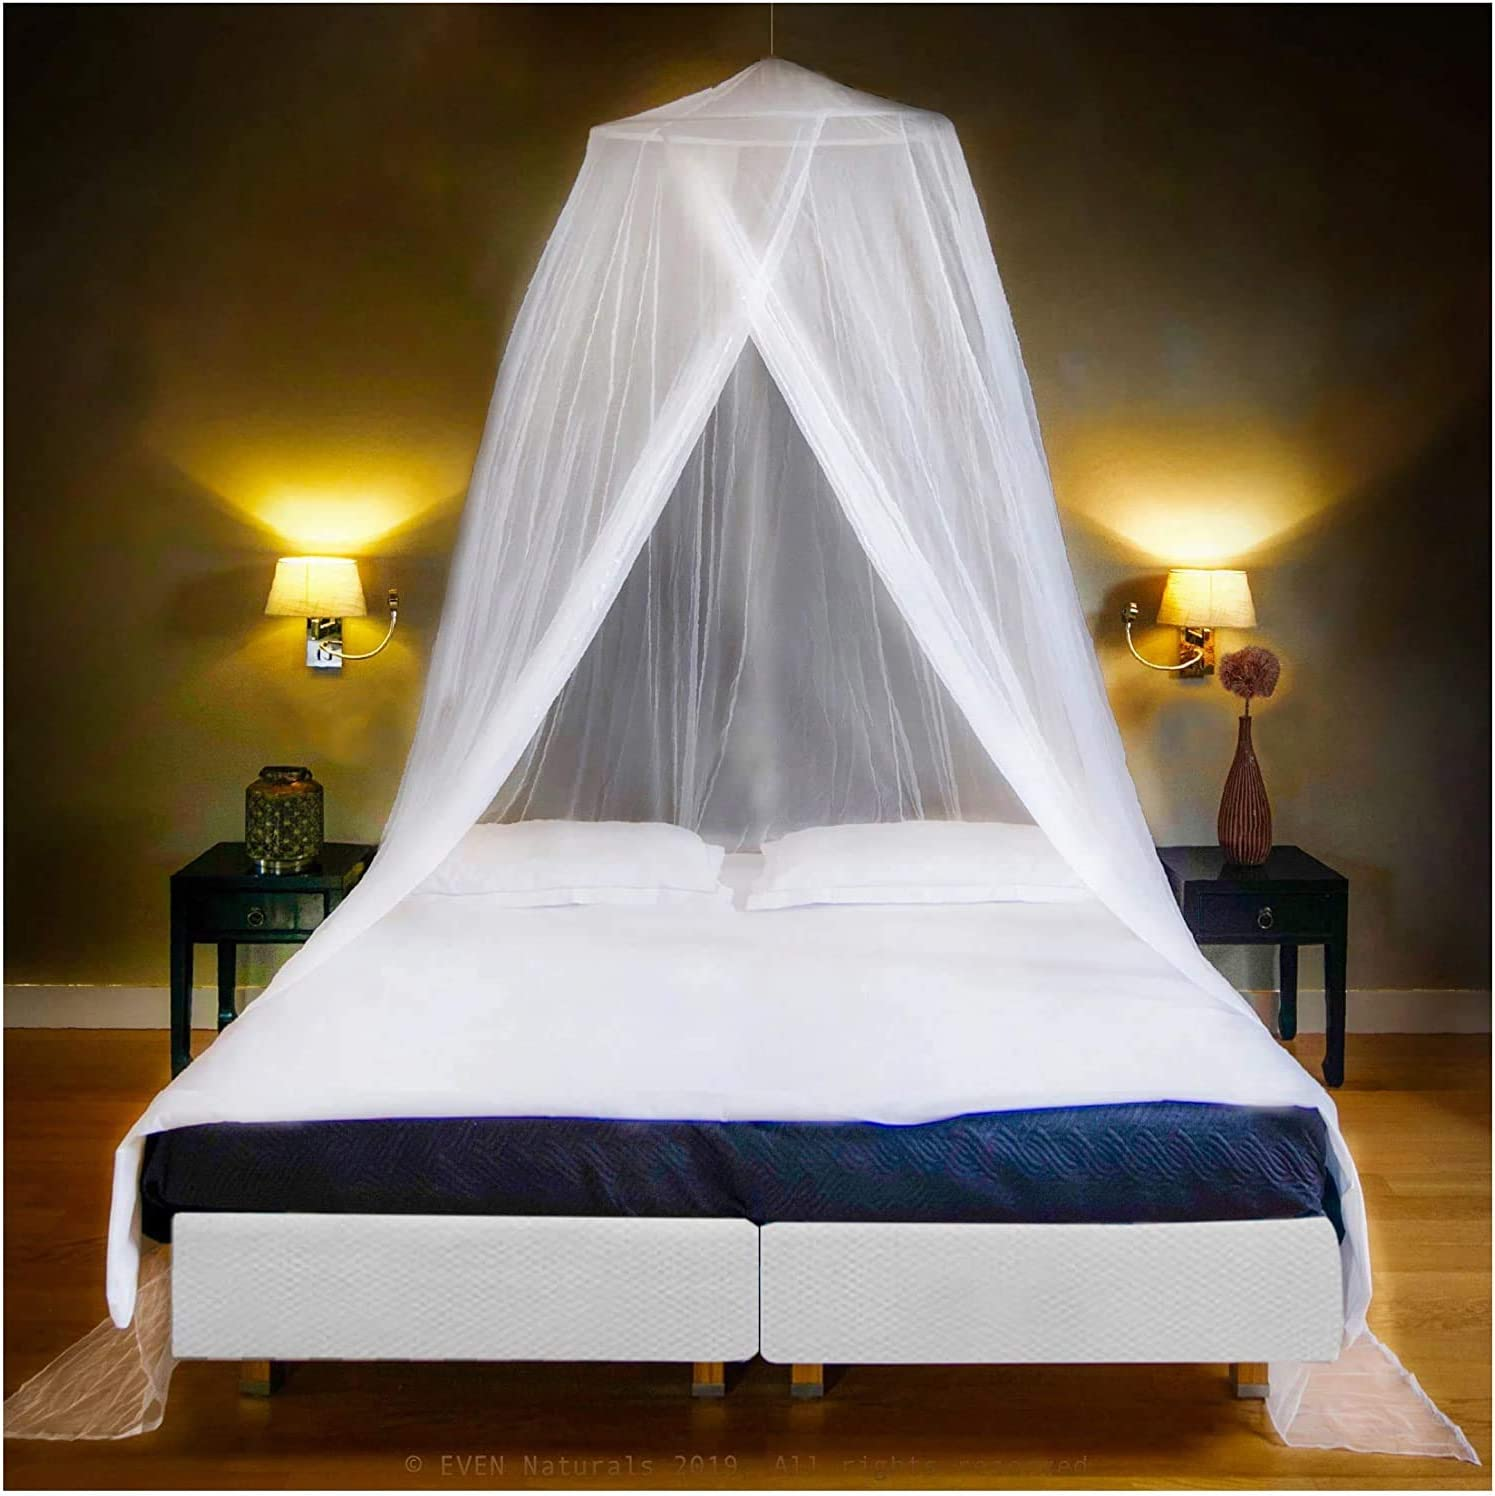 SPORTZTREK MOSQUITO NET DOUBLE BED 500 HOLES SQUARE INCH